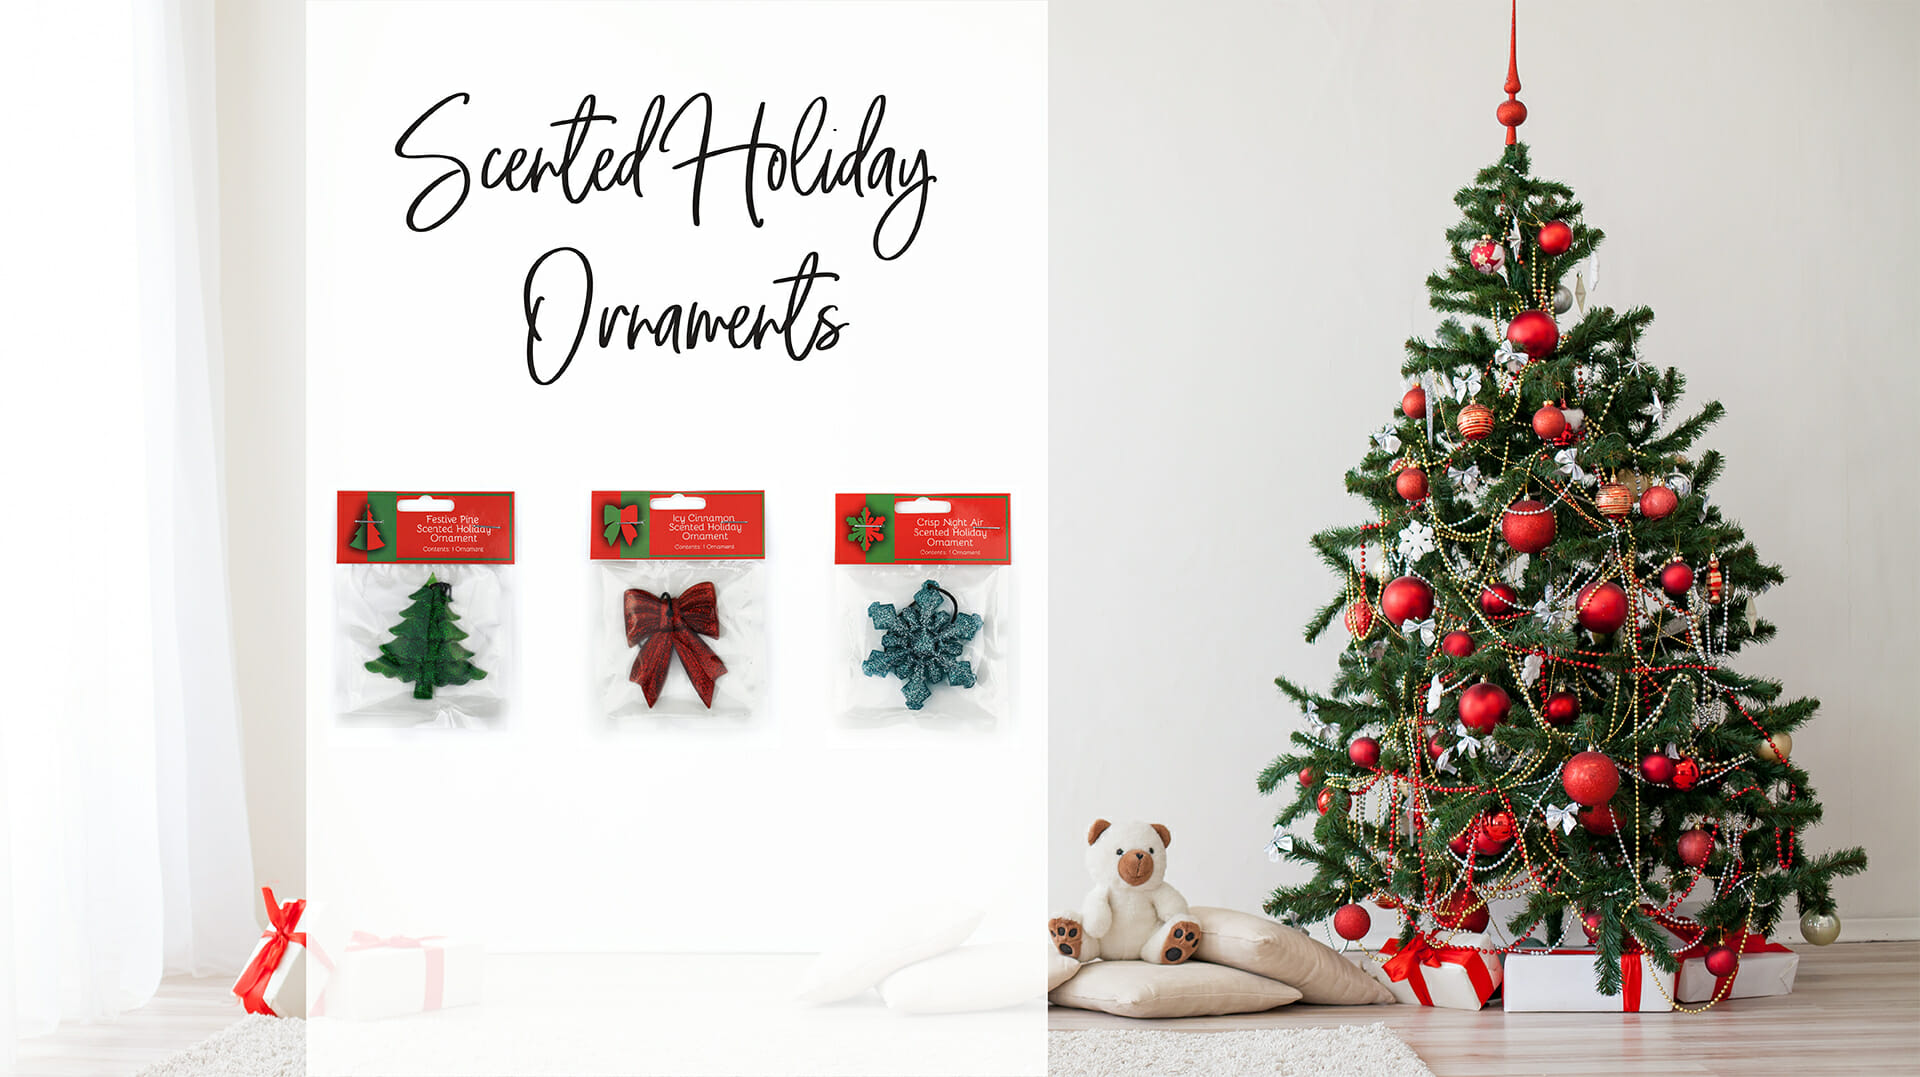 Try our Decorative Scented Holiday Ornaments to Spice Up ...